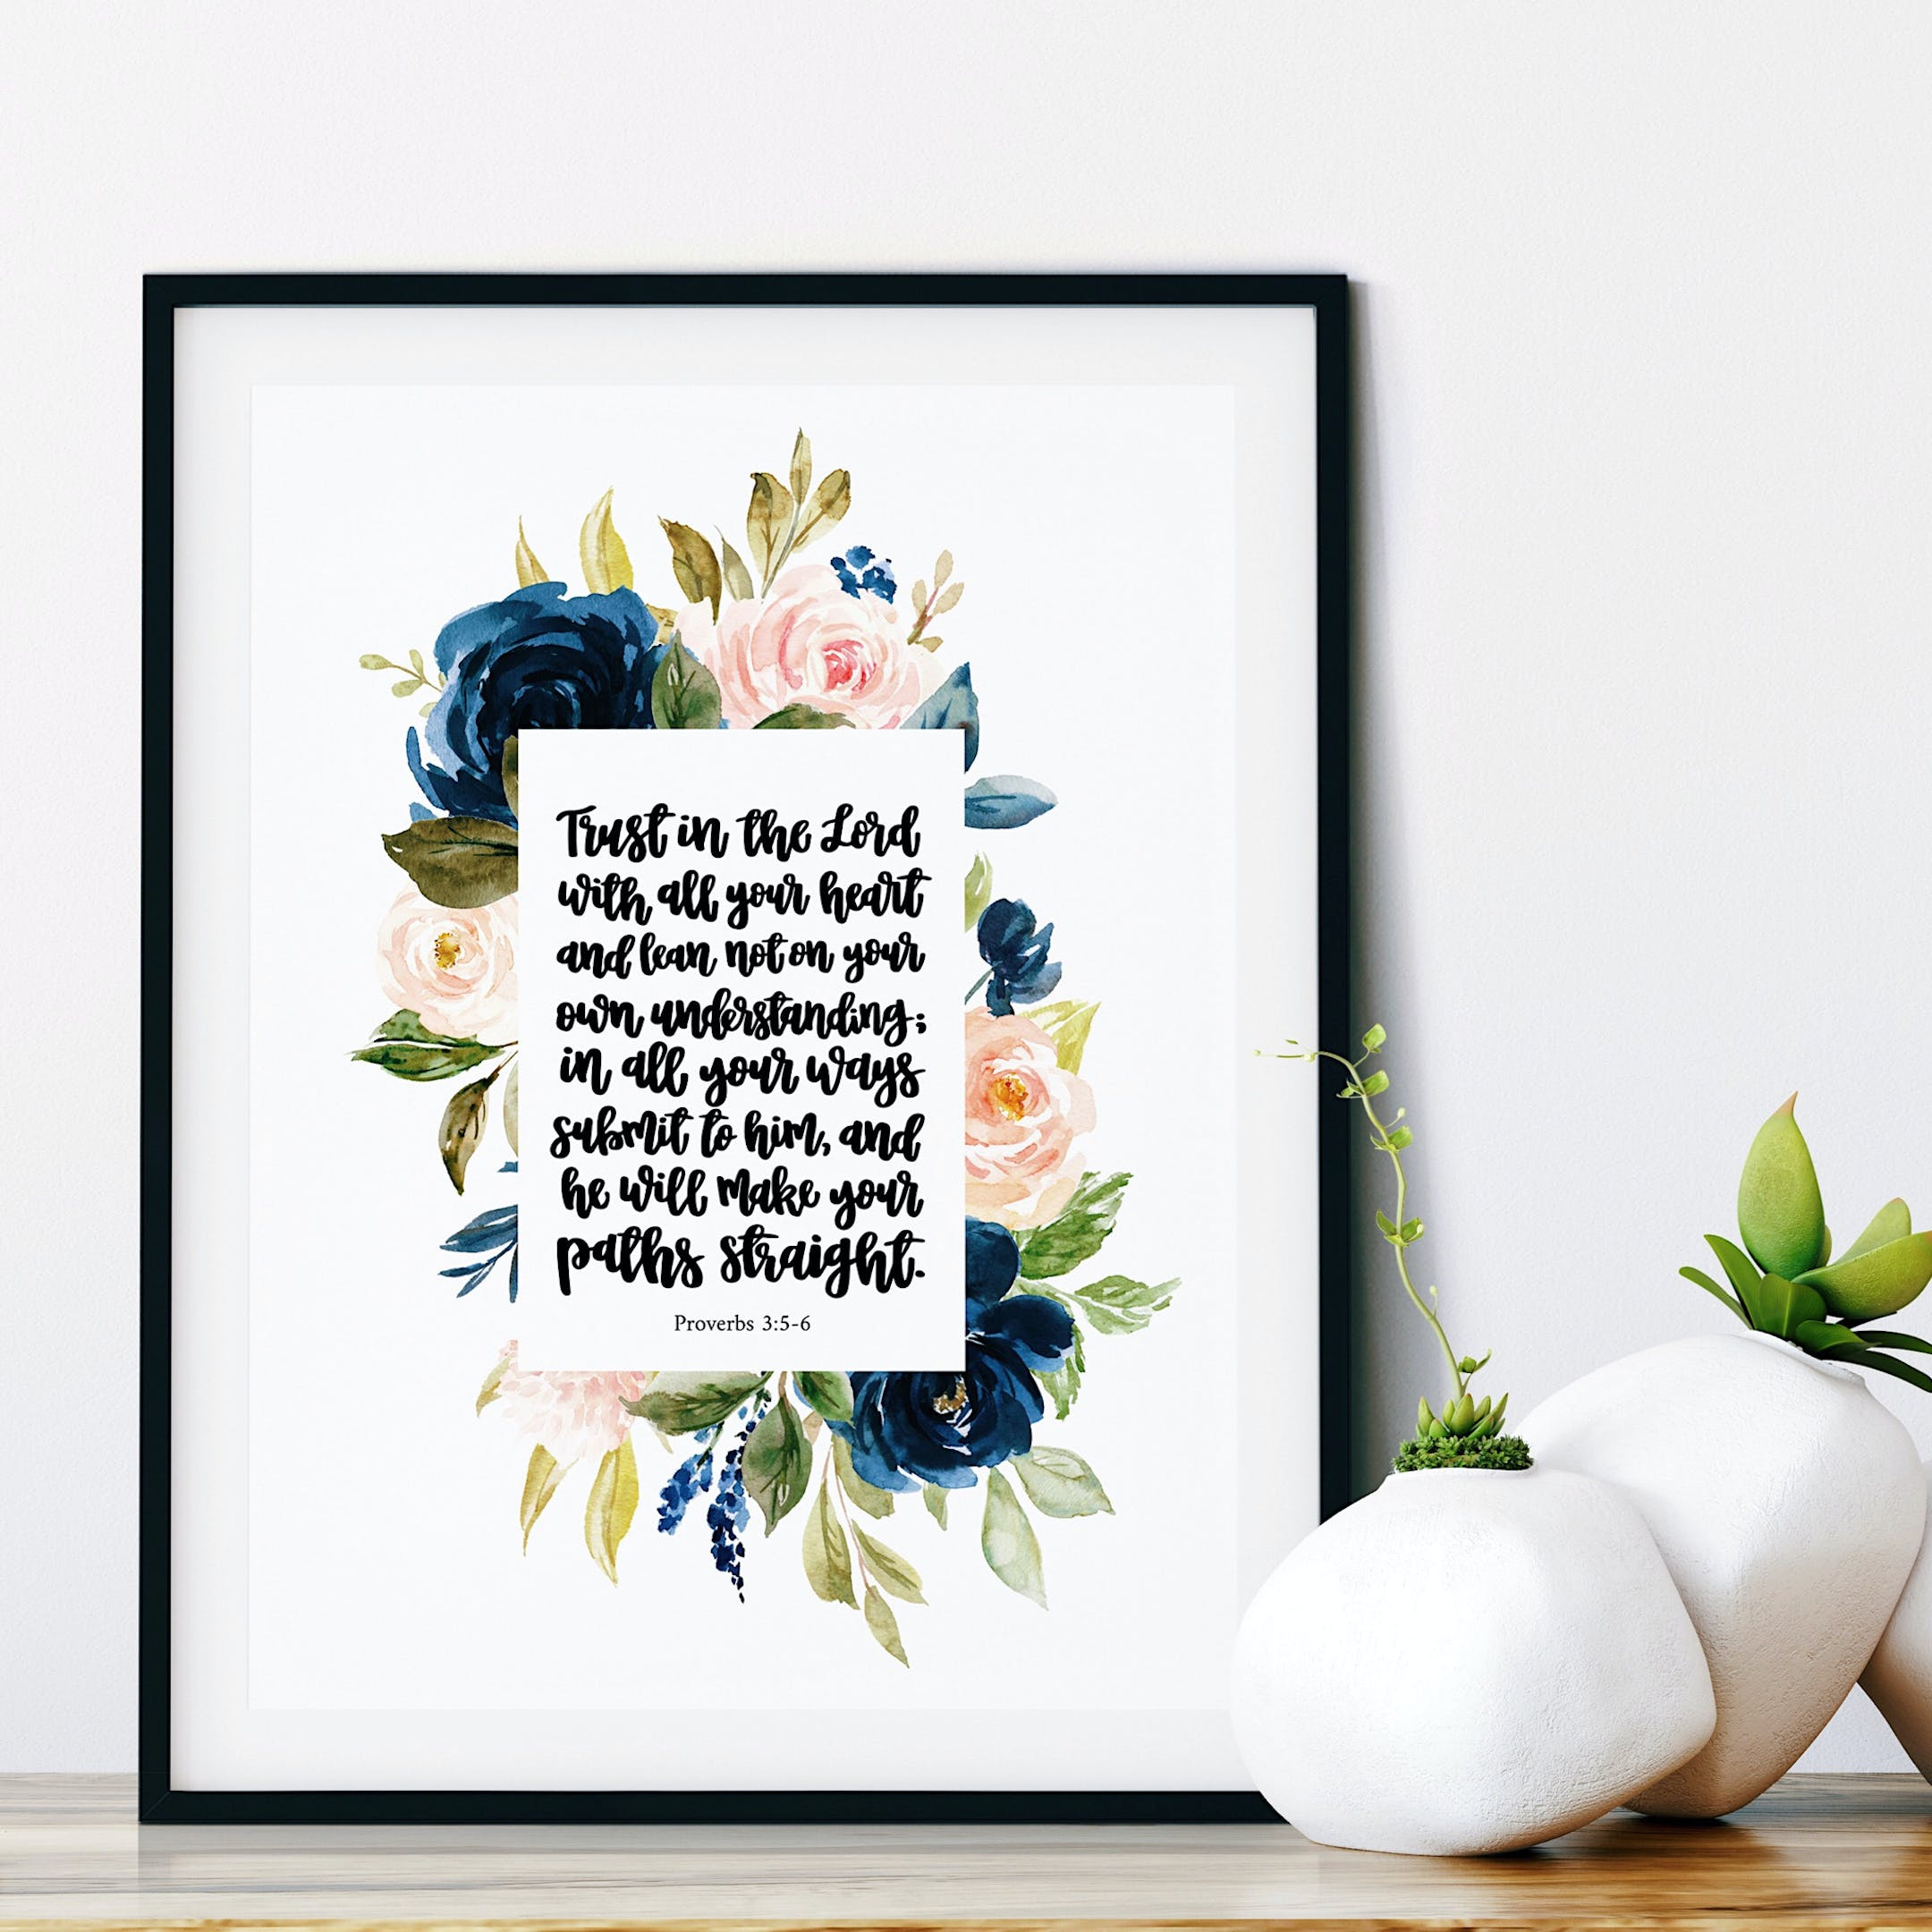 Trust In The Lord Print - Proverbs 3:5-6 - Floral - Izzy & Pop